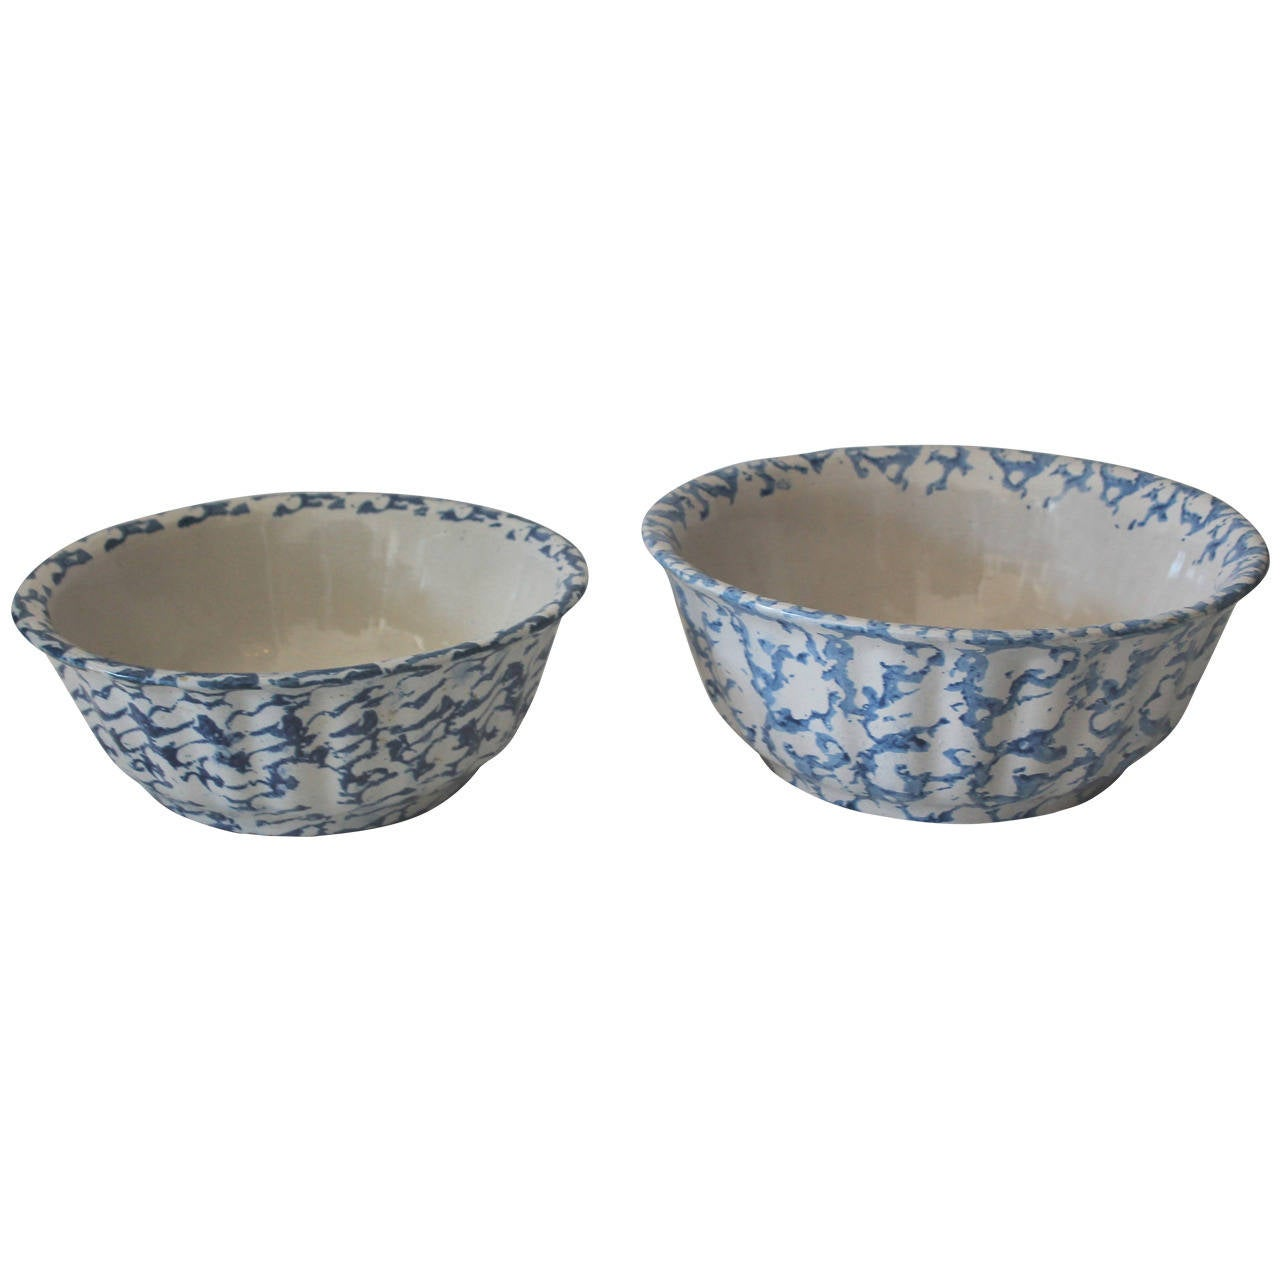 Pair of Large 19th Century Spongeware Pottery Serving Bowls